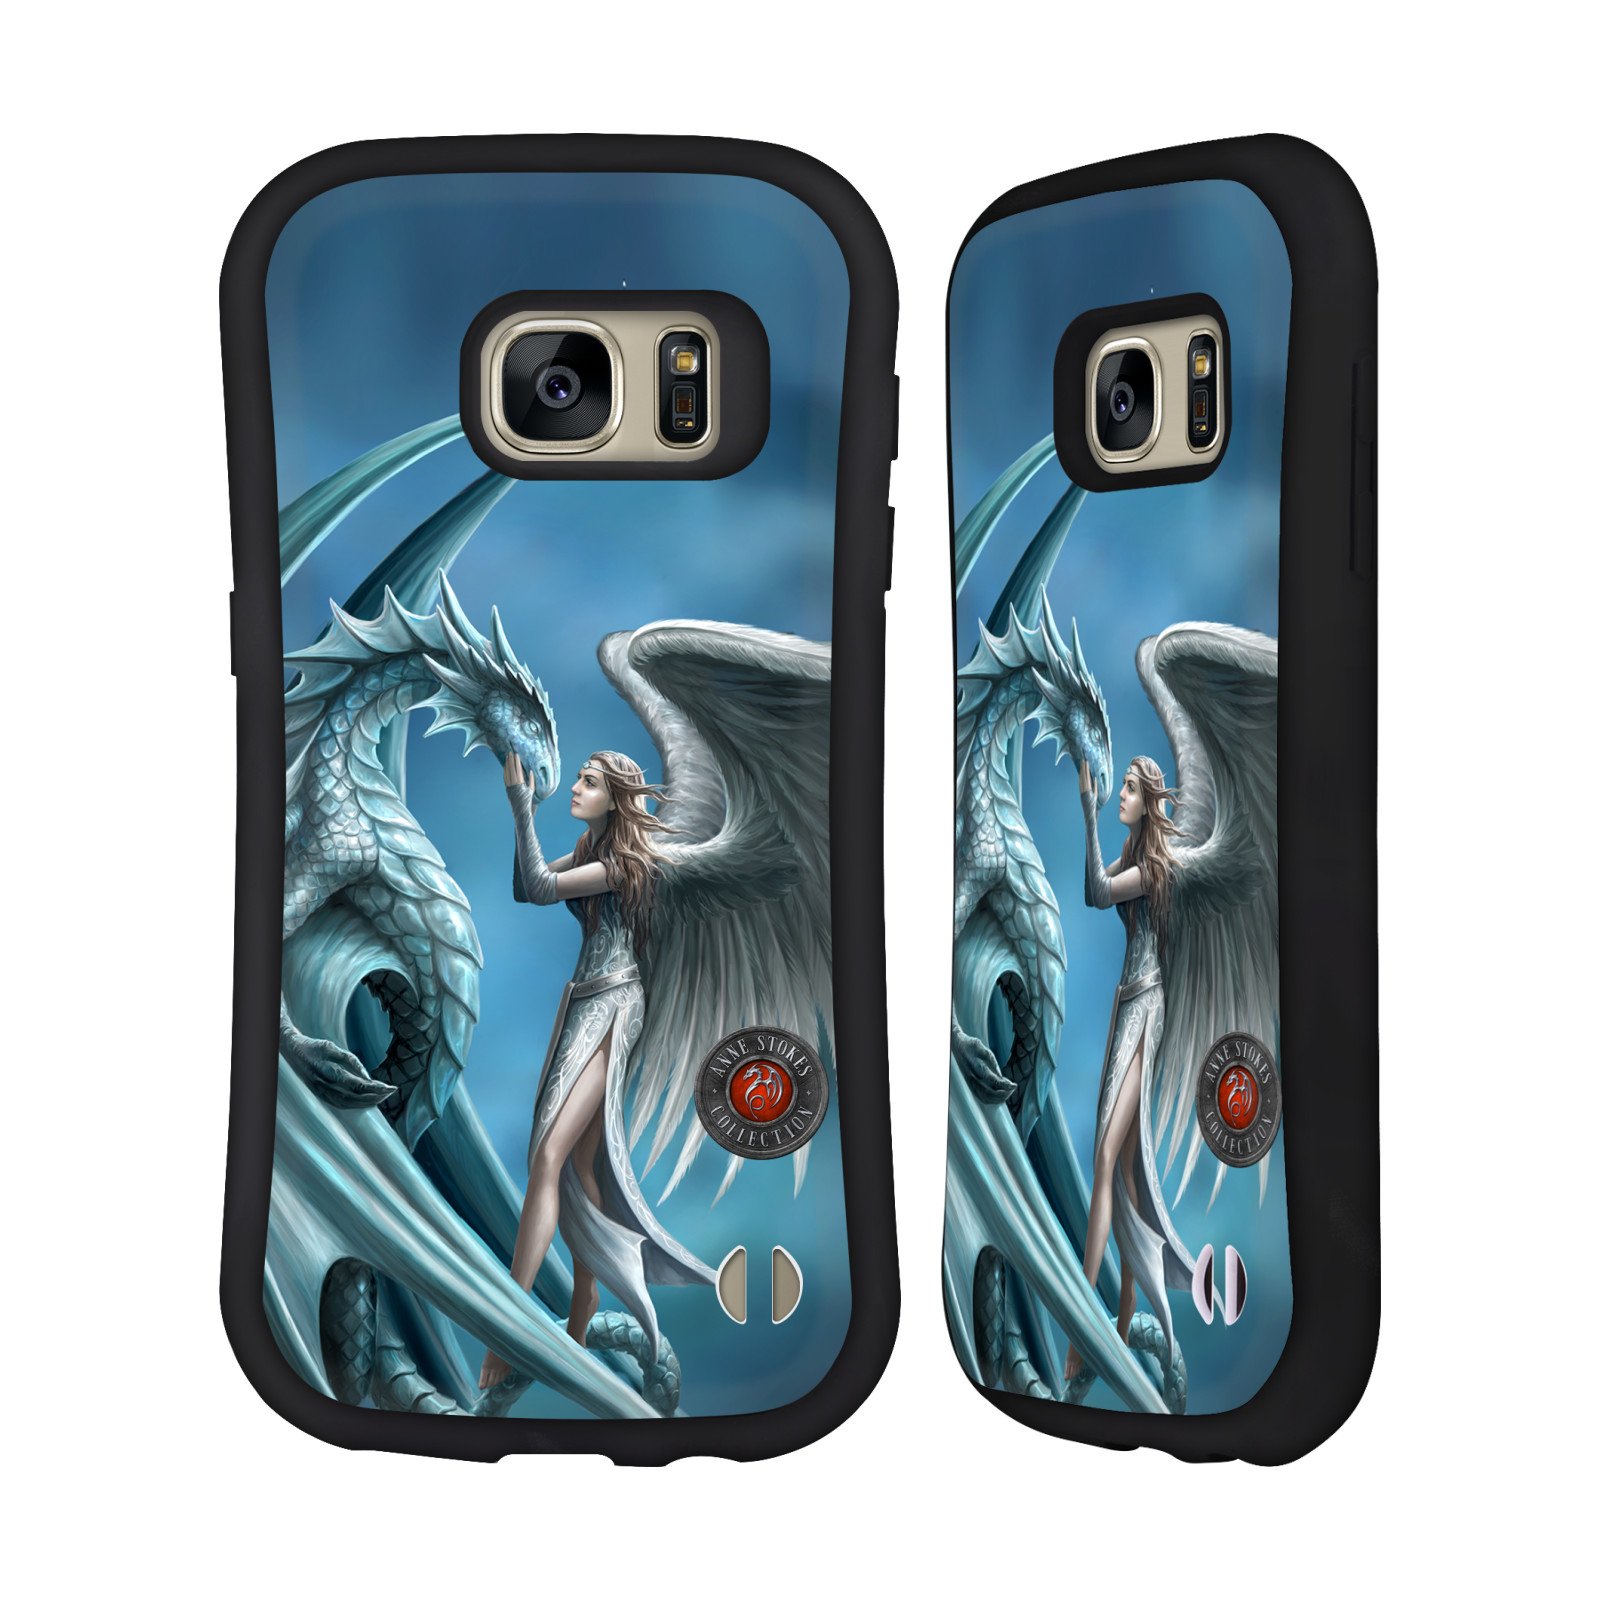 OFFICIAL ANNE STOKES DRAGON FRIENDSHIP HYBRID CASE FOR SAMSUNG PHONES